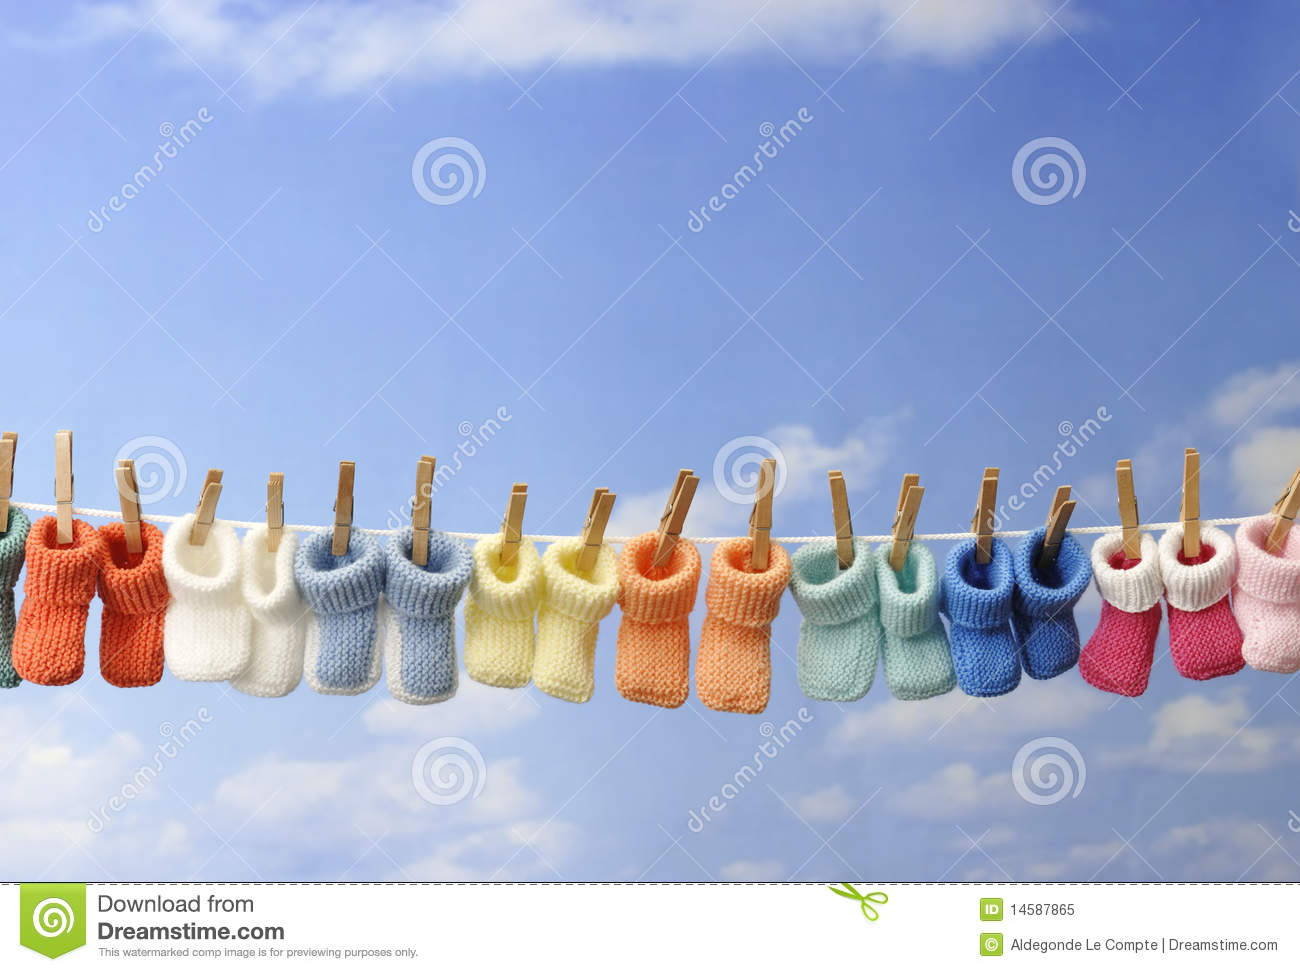 Concept colorful baby booties on a clothes line royalty free stock photo image 14587865